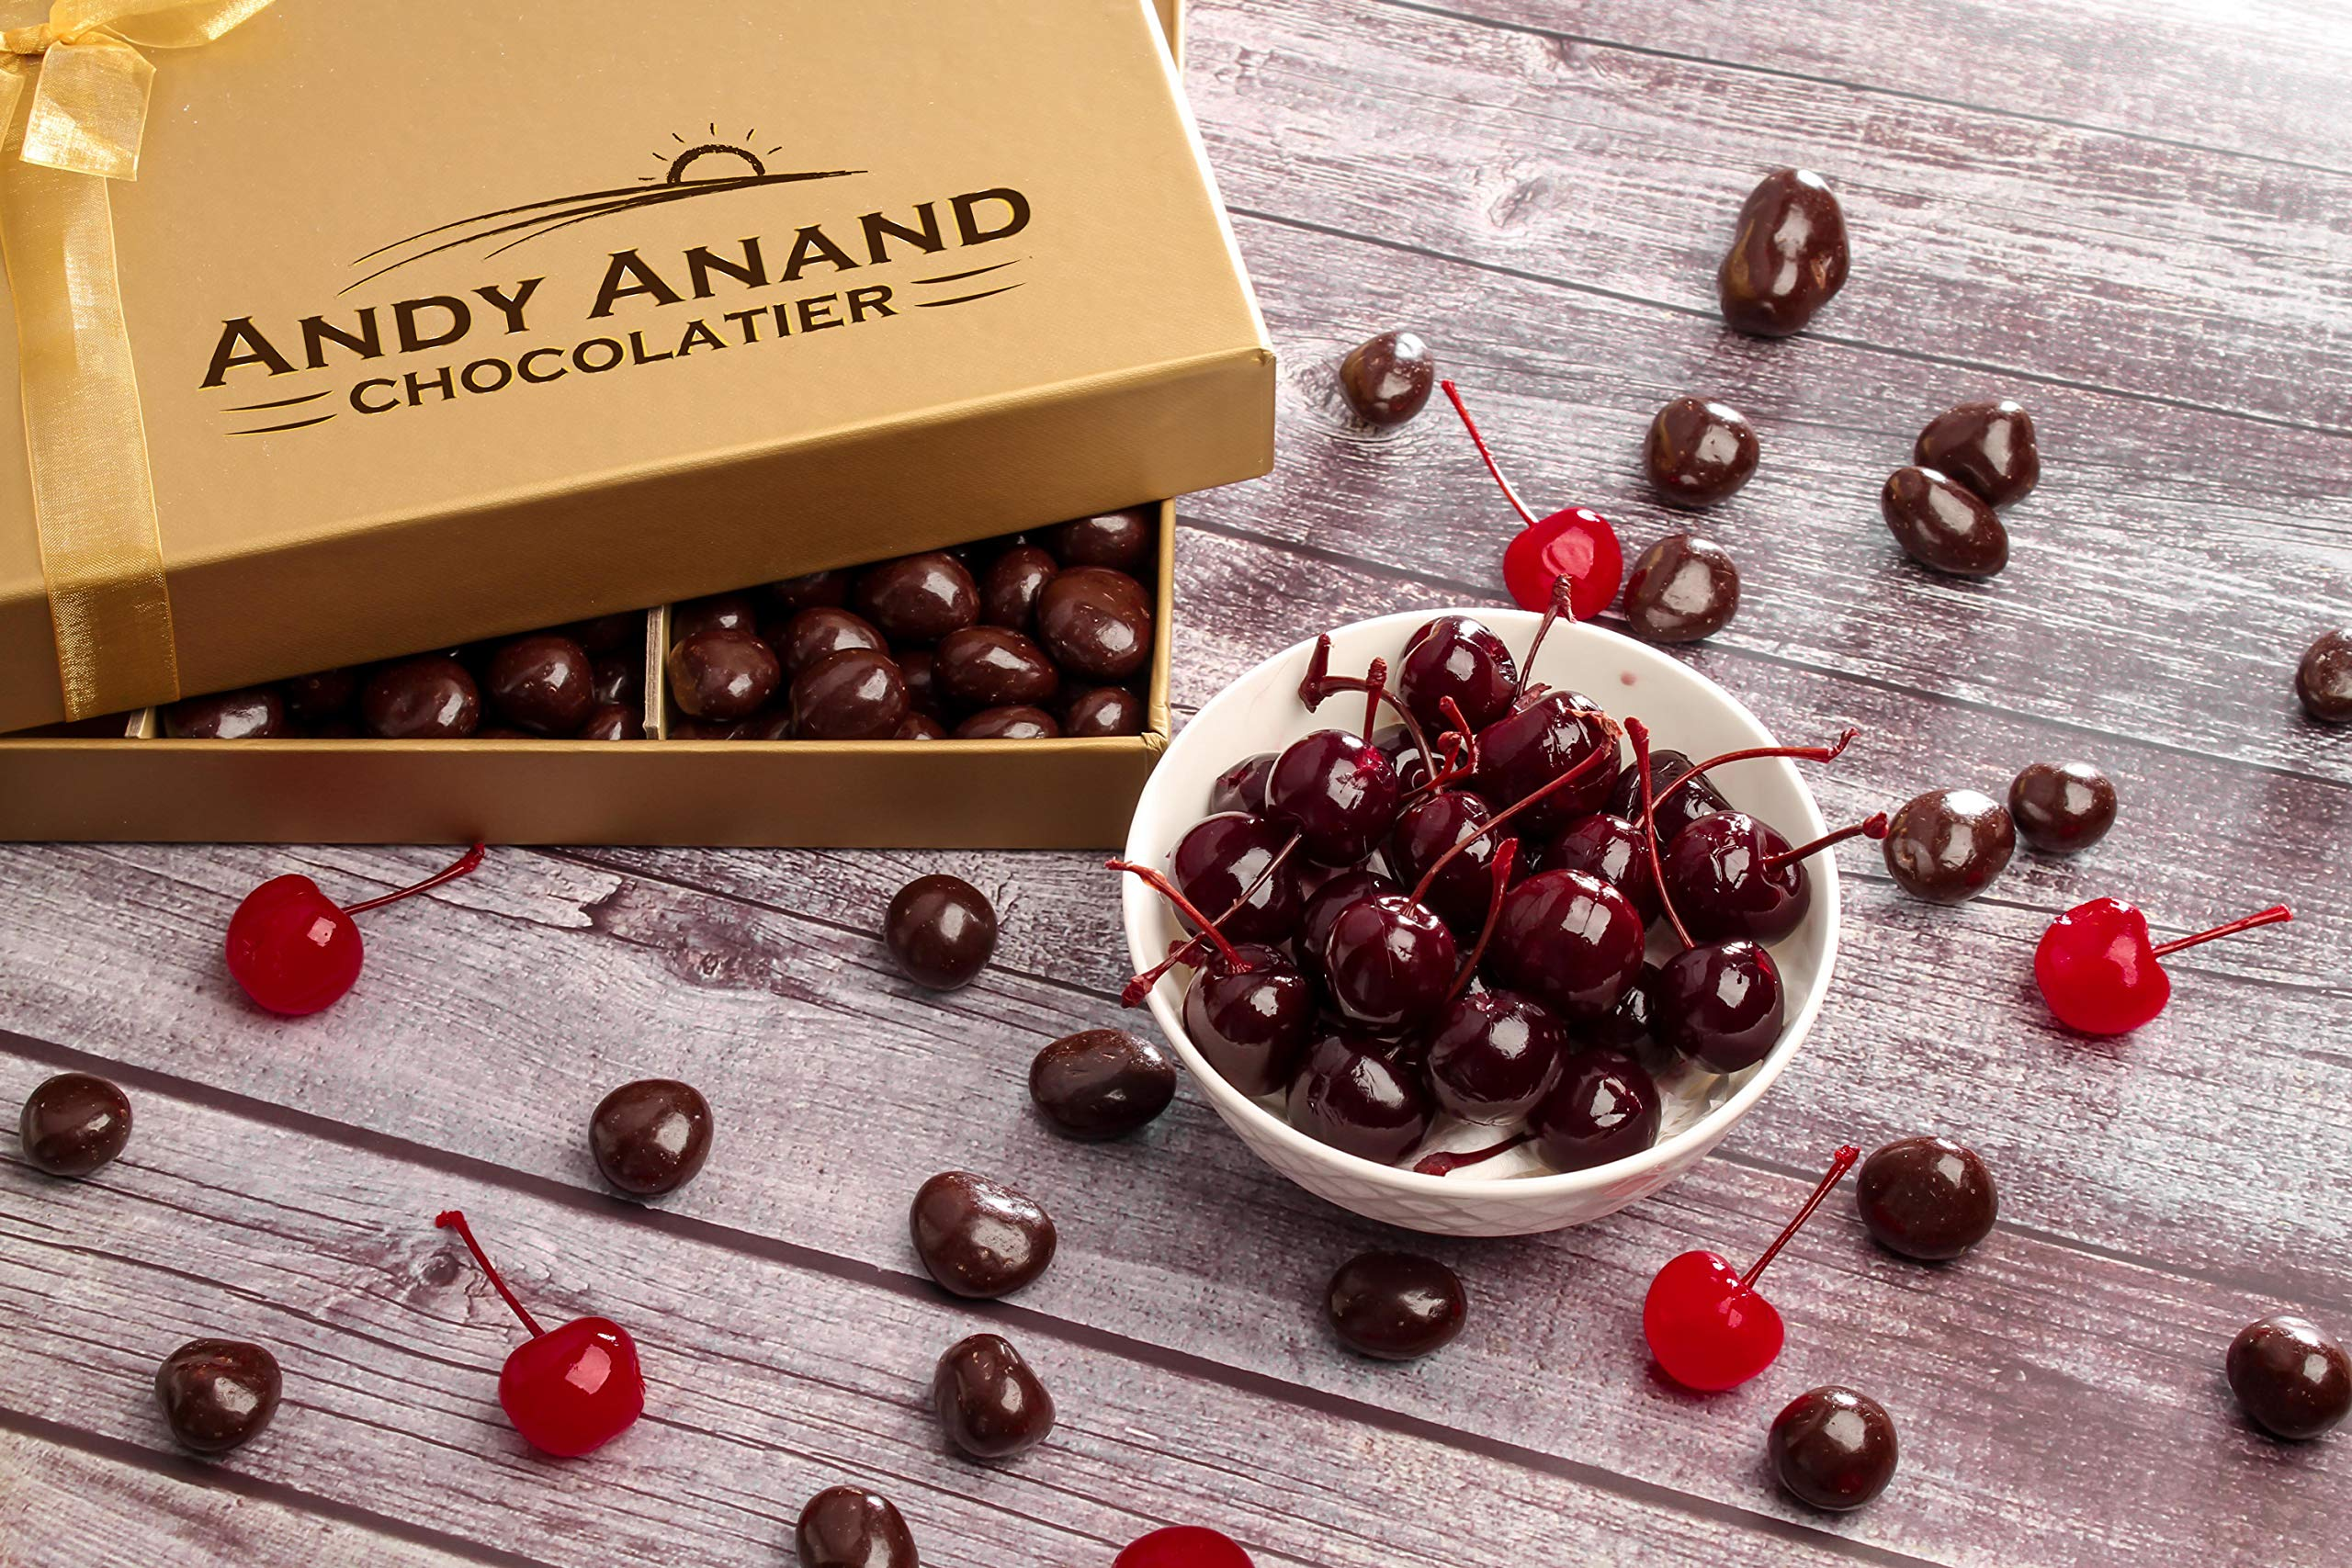 Andy Anand's California Dark Chocolate Covered Cherries 1 LB, for Birthday, Valentine Day, Gourmet Christmas Holiday Food Gift Basket, Thanksgiving, Mothers Fathers Day, Get Well Gift for Men & Women